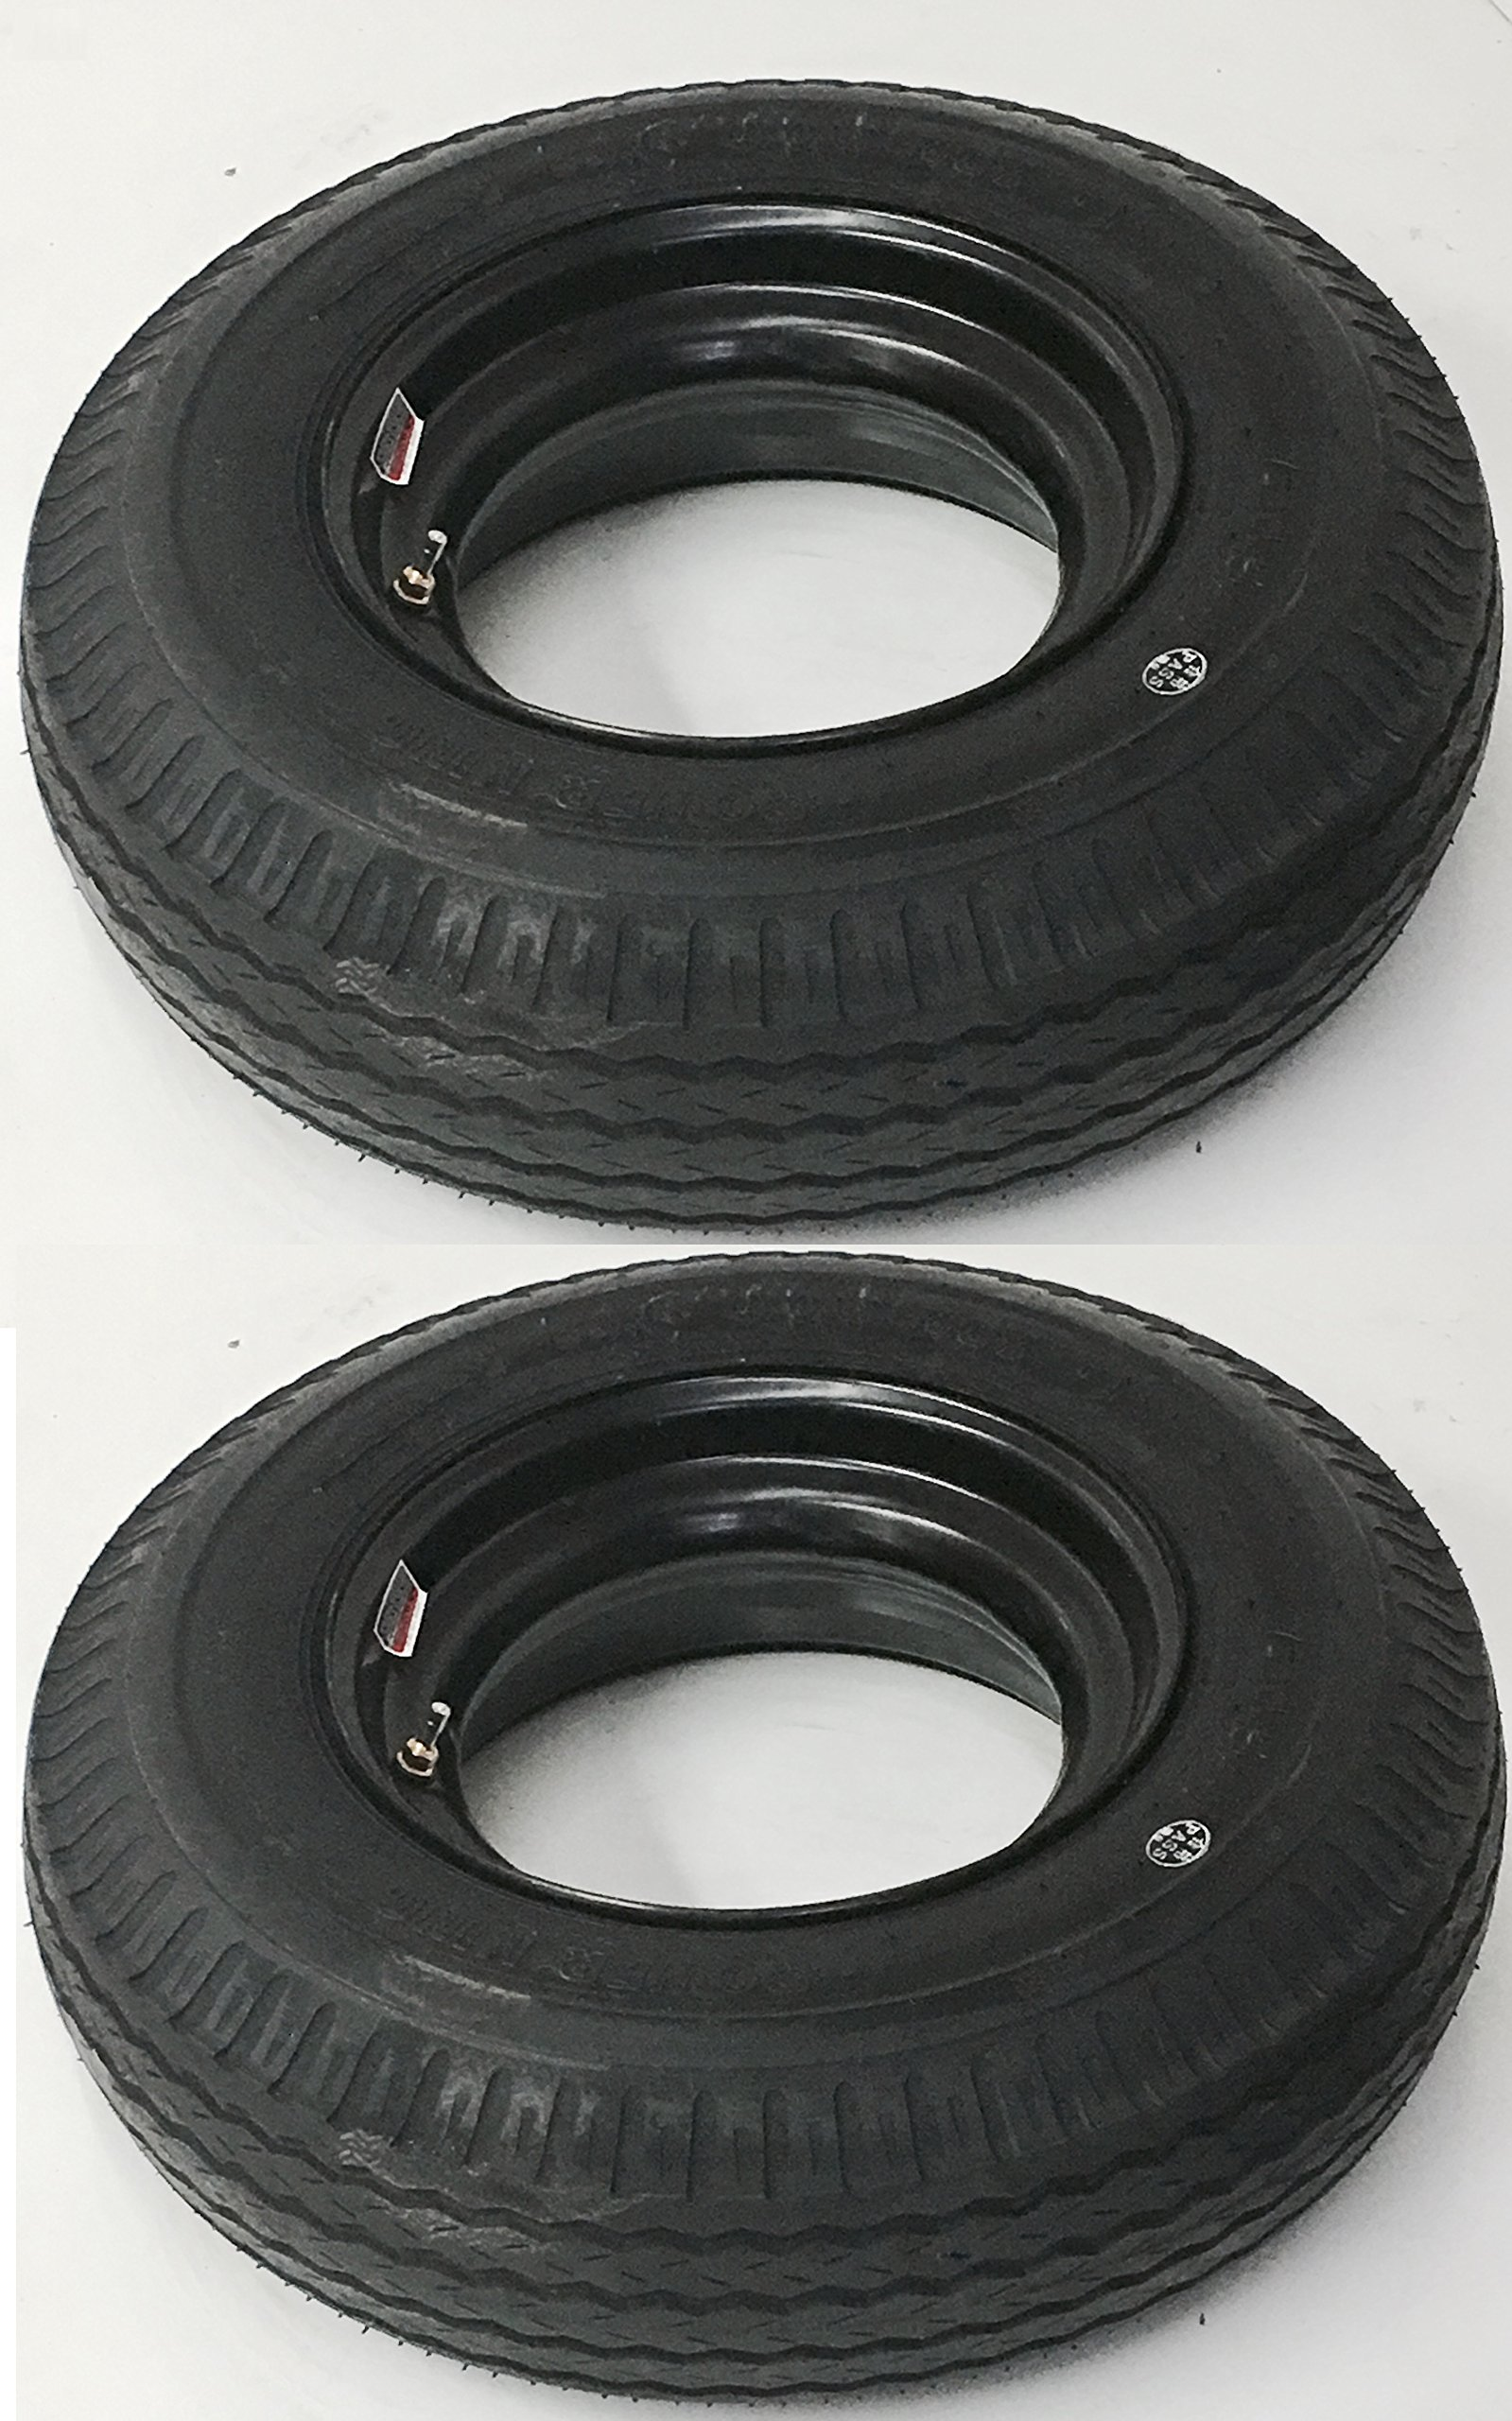 eCustomRim Two Open Center Mobile Home Trailer Tires & Rims 7X14.5 7-14.5 14.5 Load F 12Ply